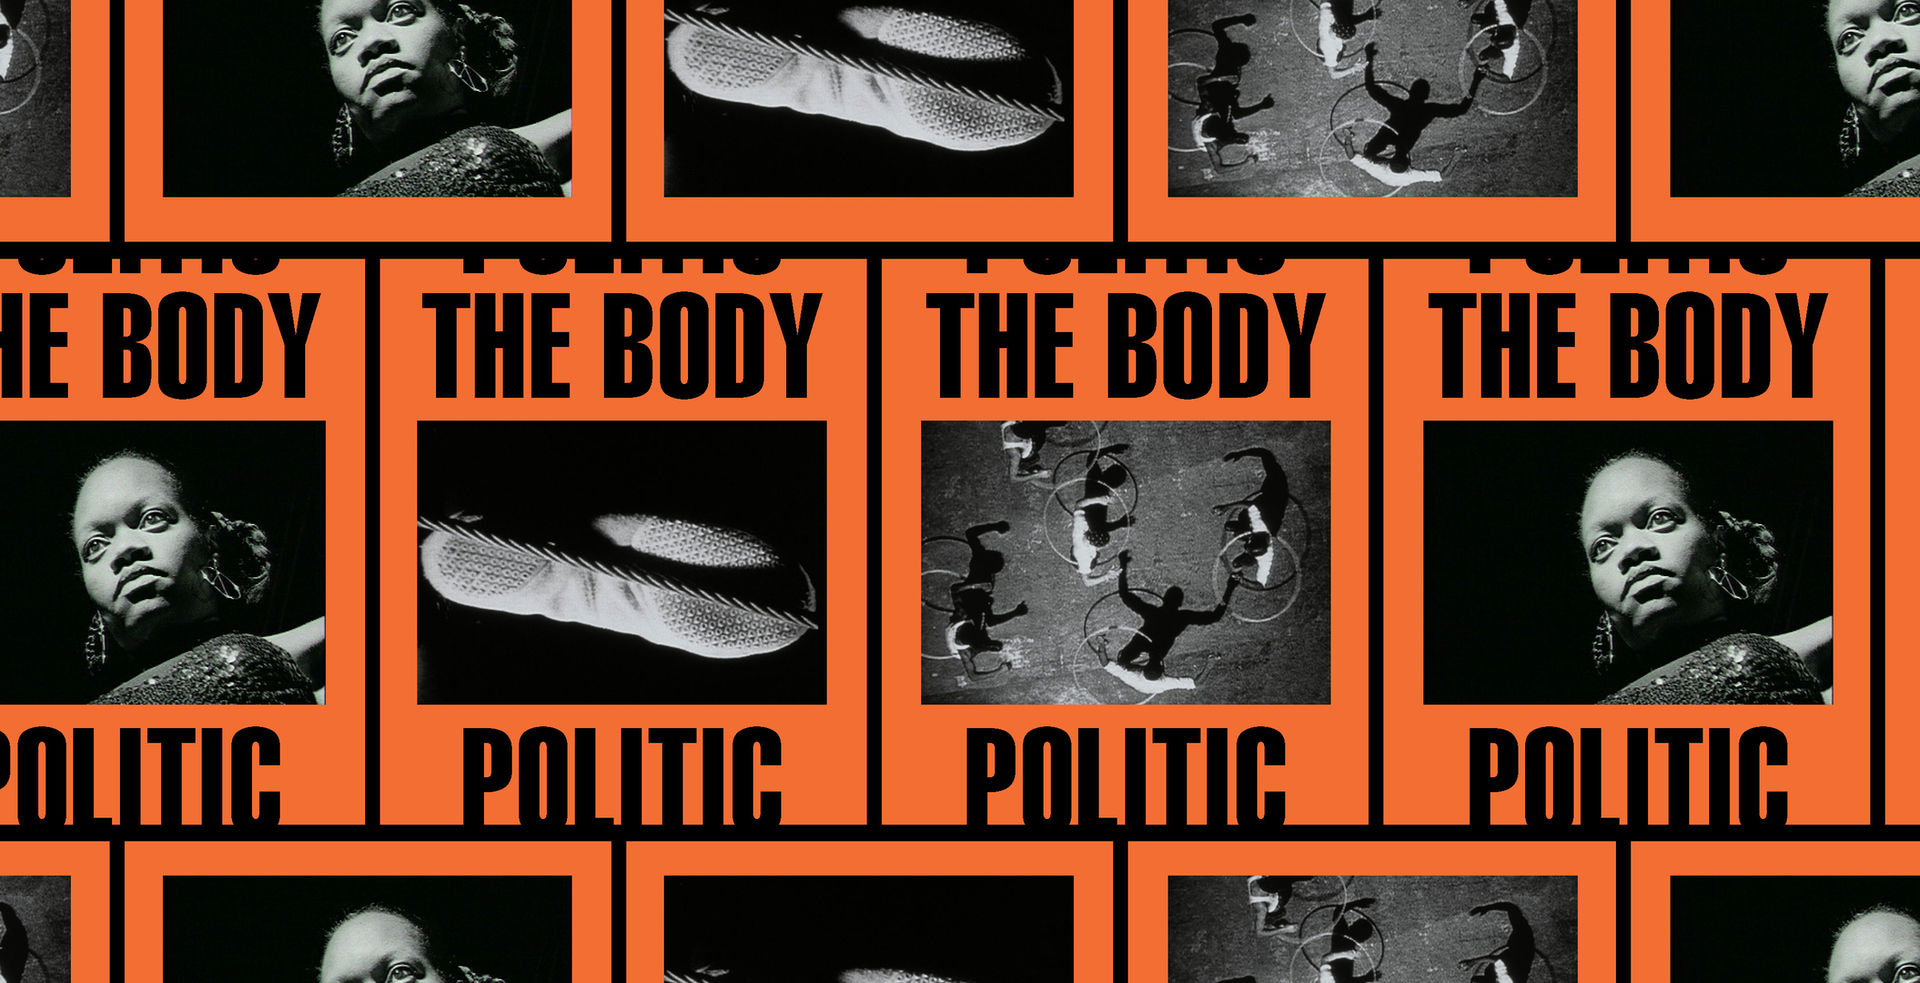 eroticism and the body politic a Download free ebook:eroticism and the body politic - free chm, pdf ebooks download.